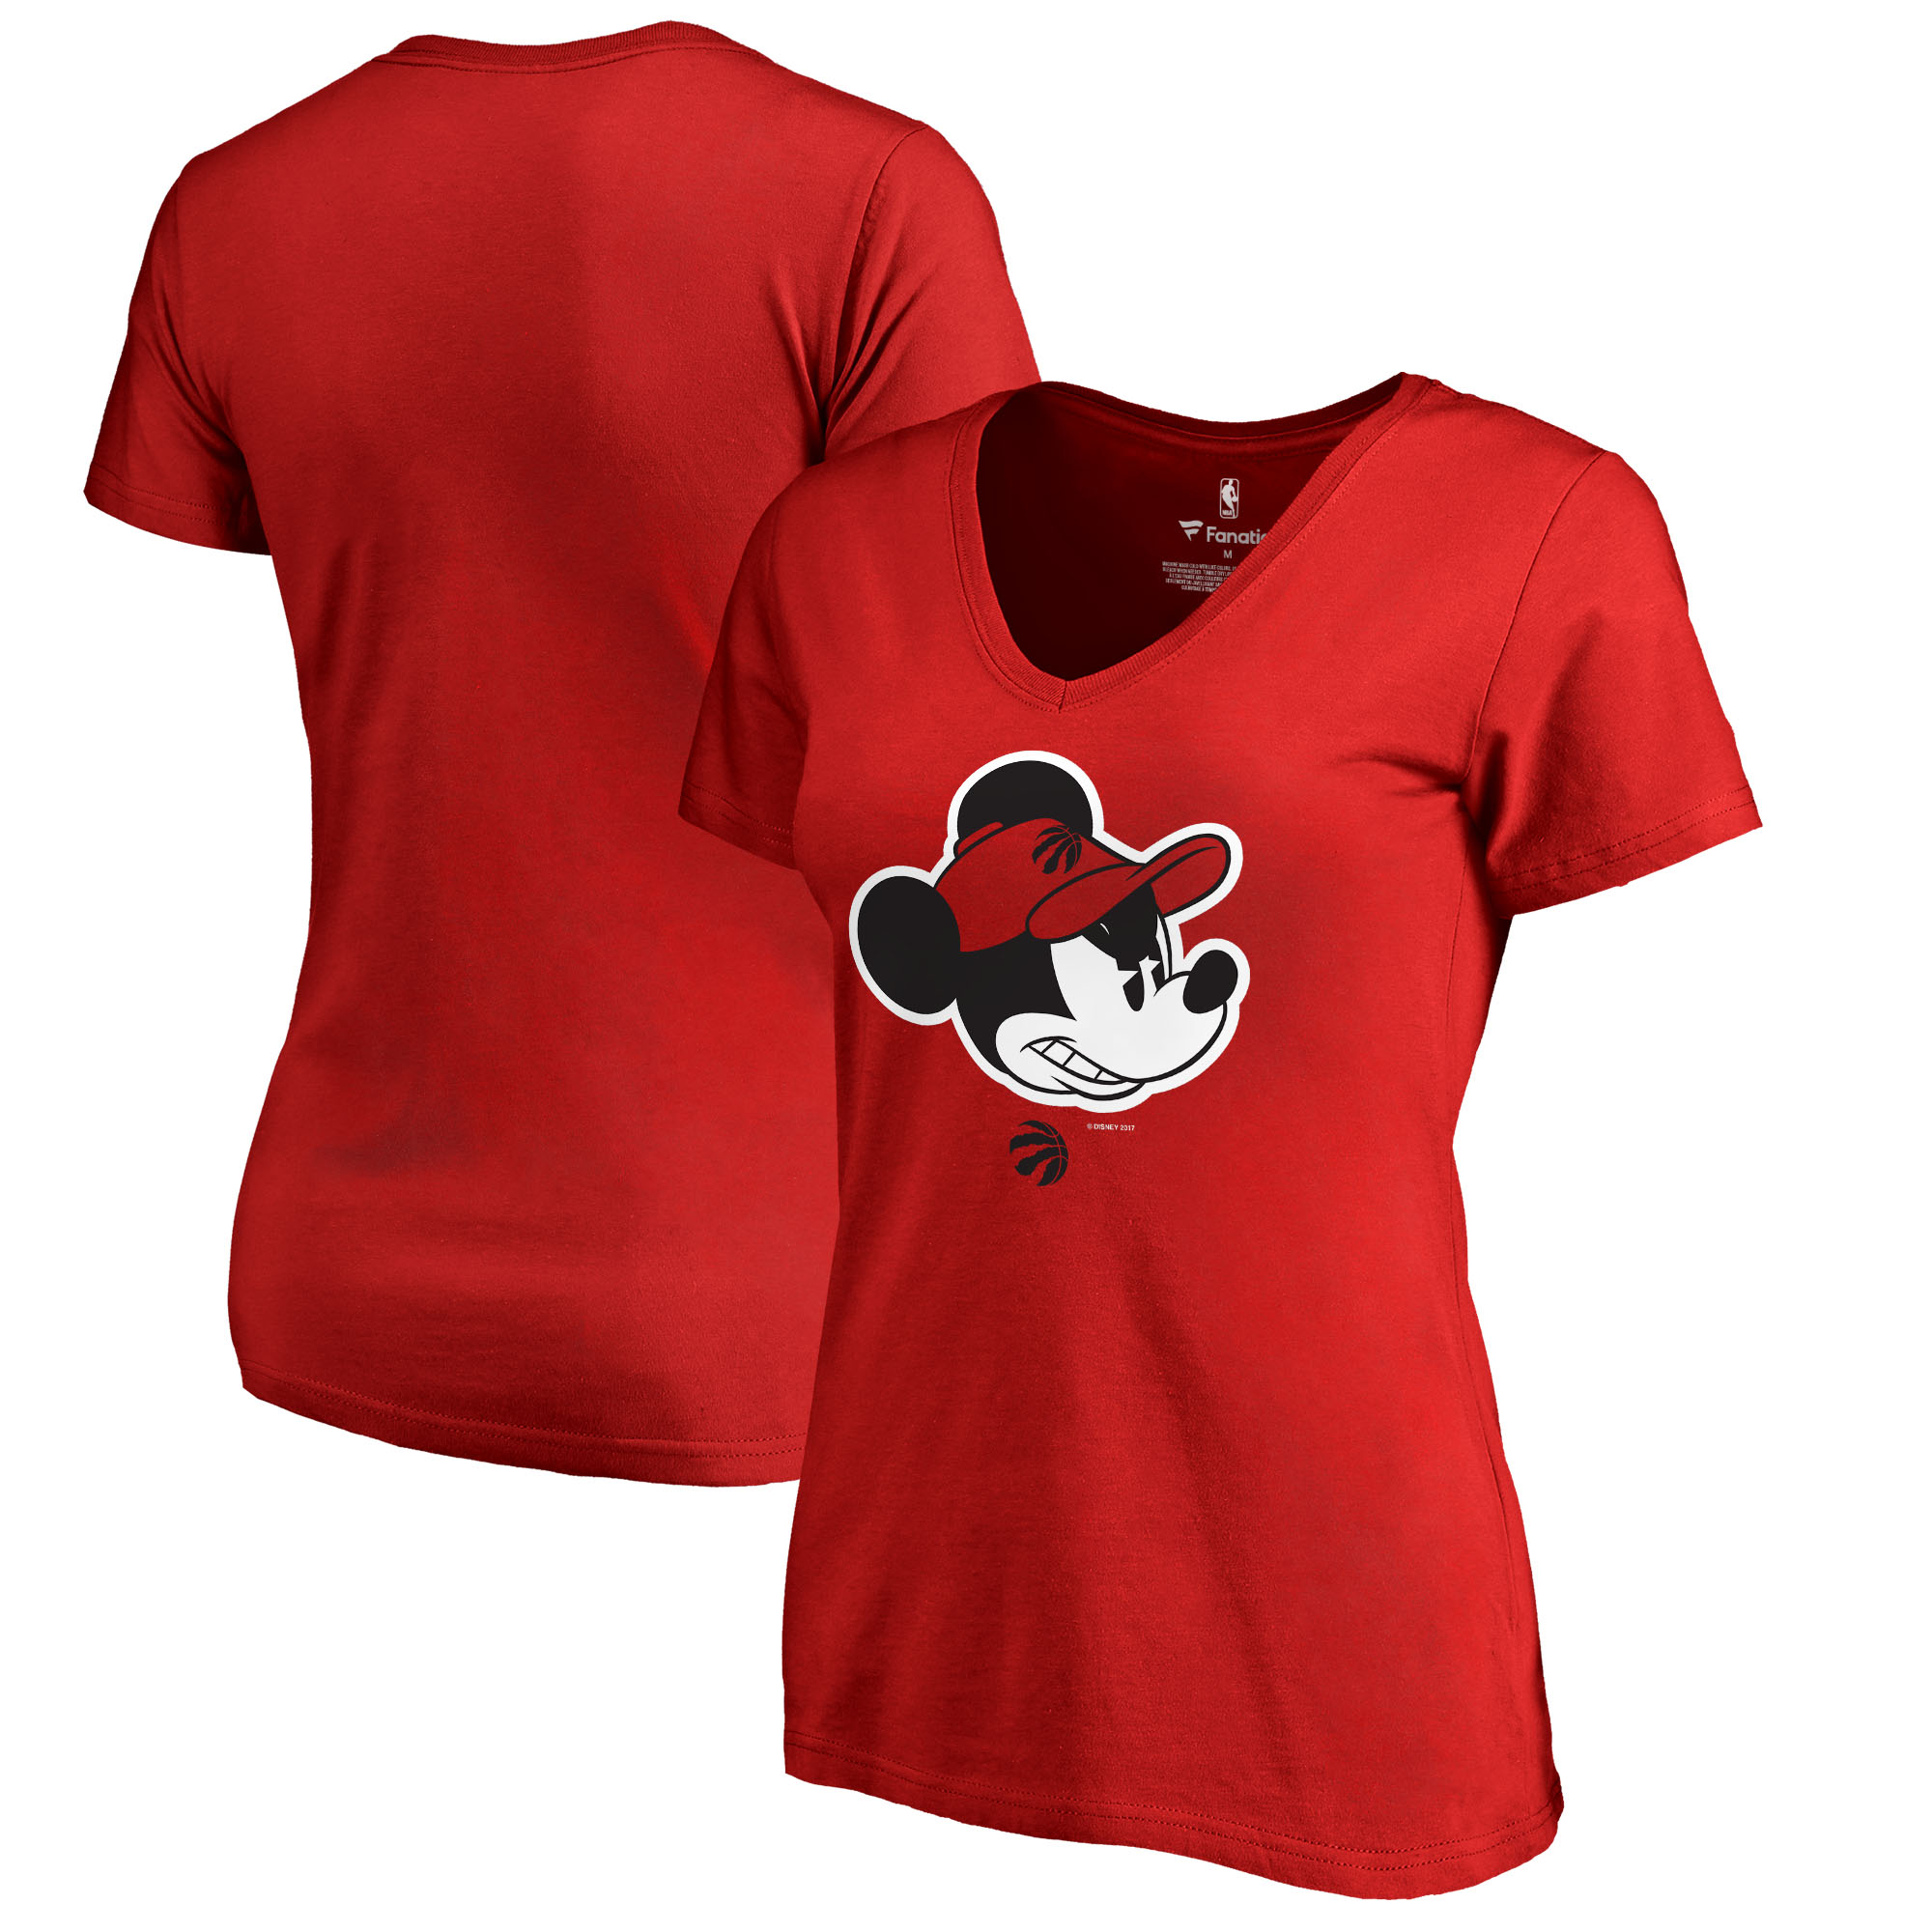 Toronto Raptors Fanatics Branded Women's Disney Game Face V-Neck T-Shirt - Red